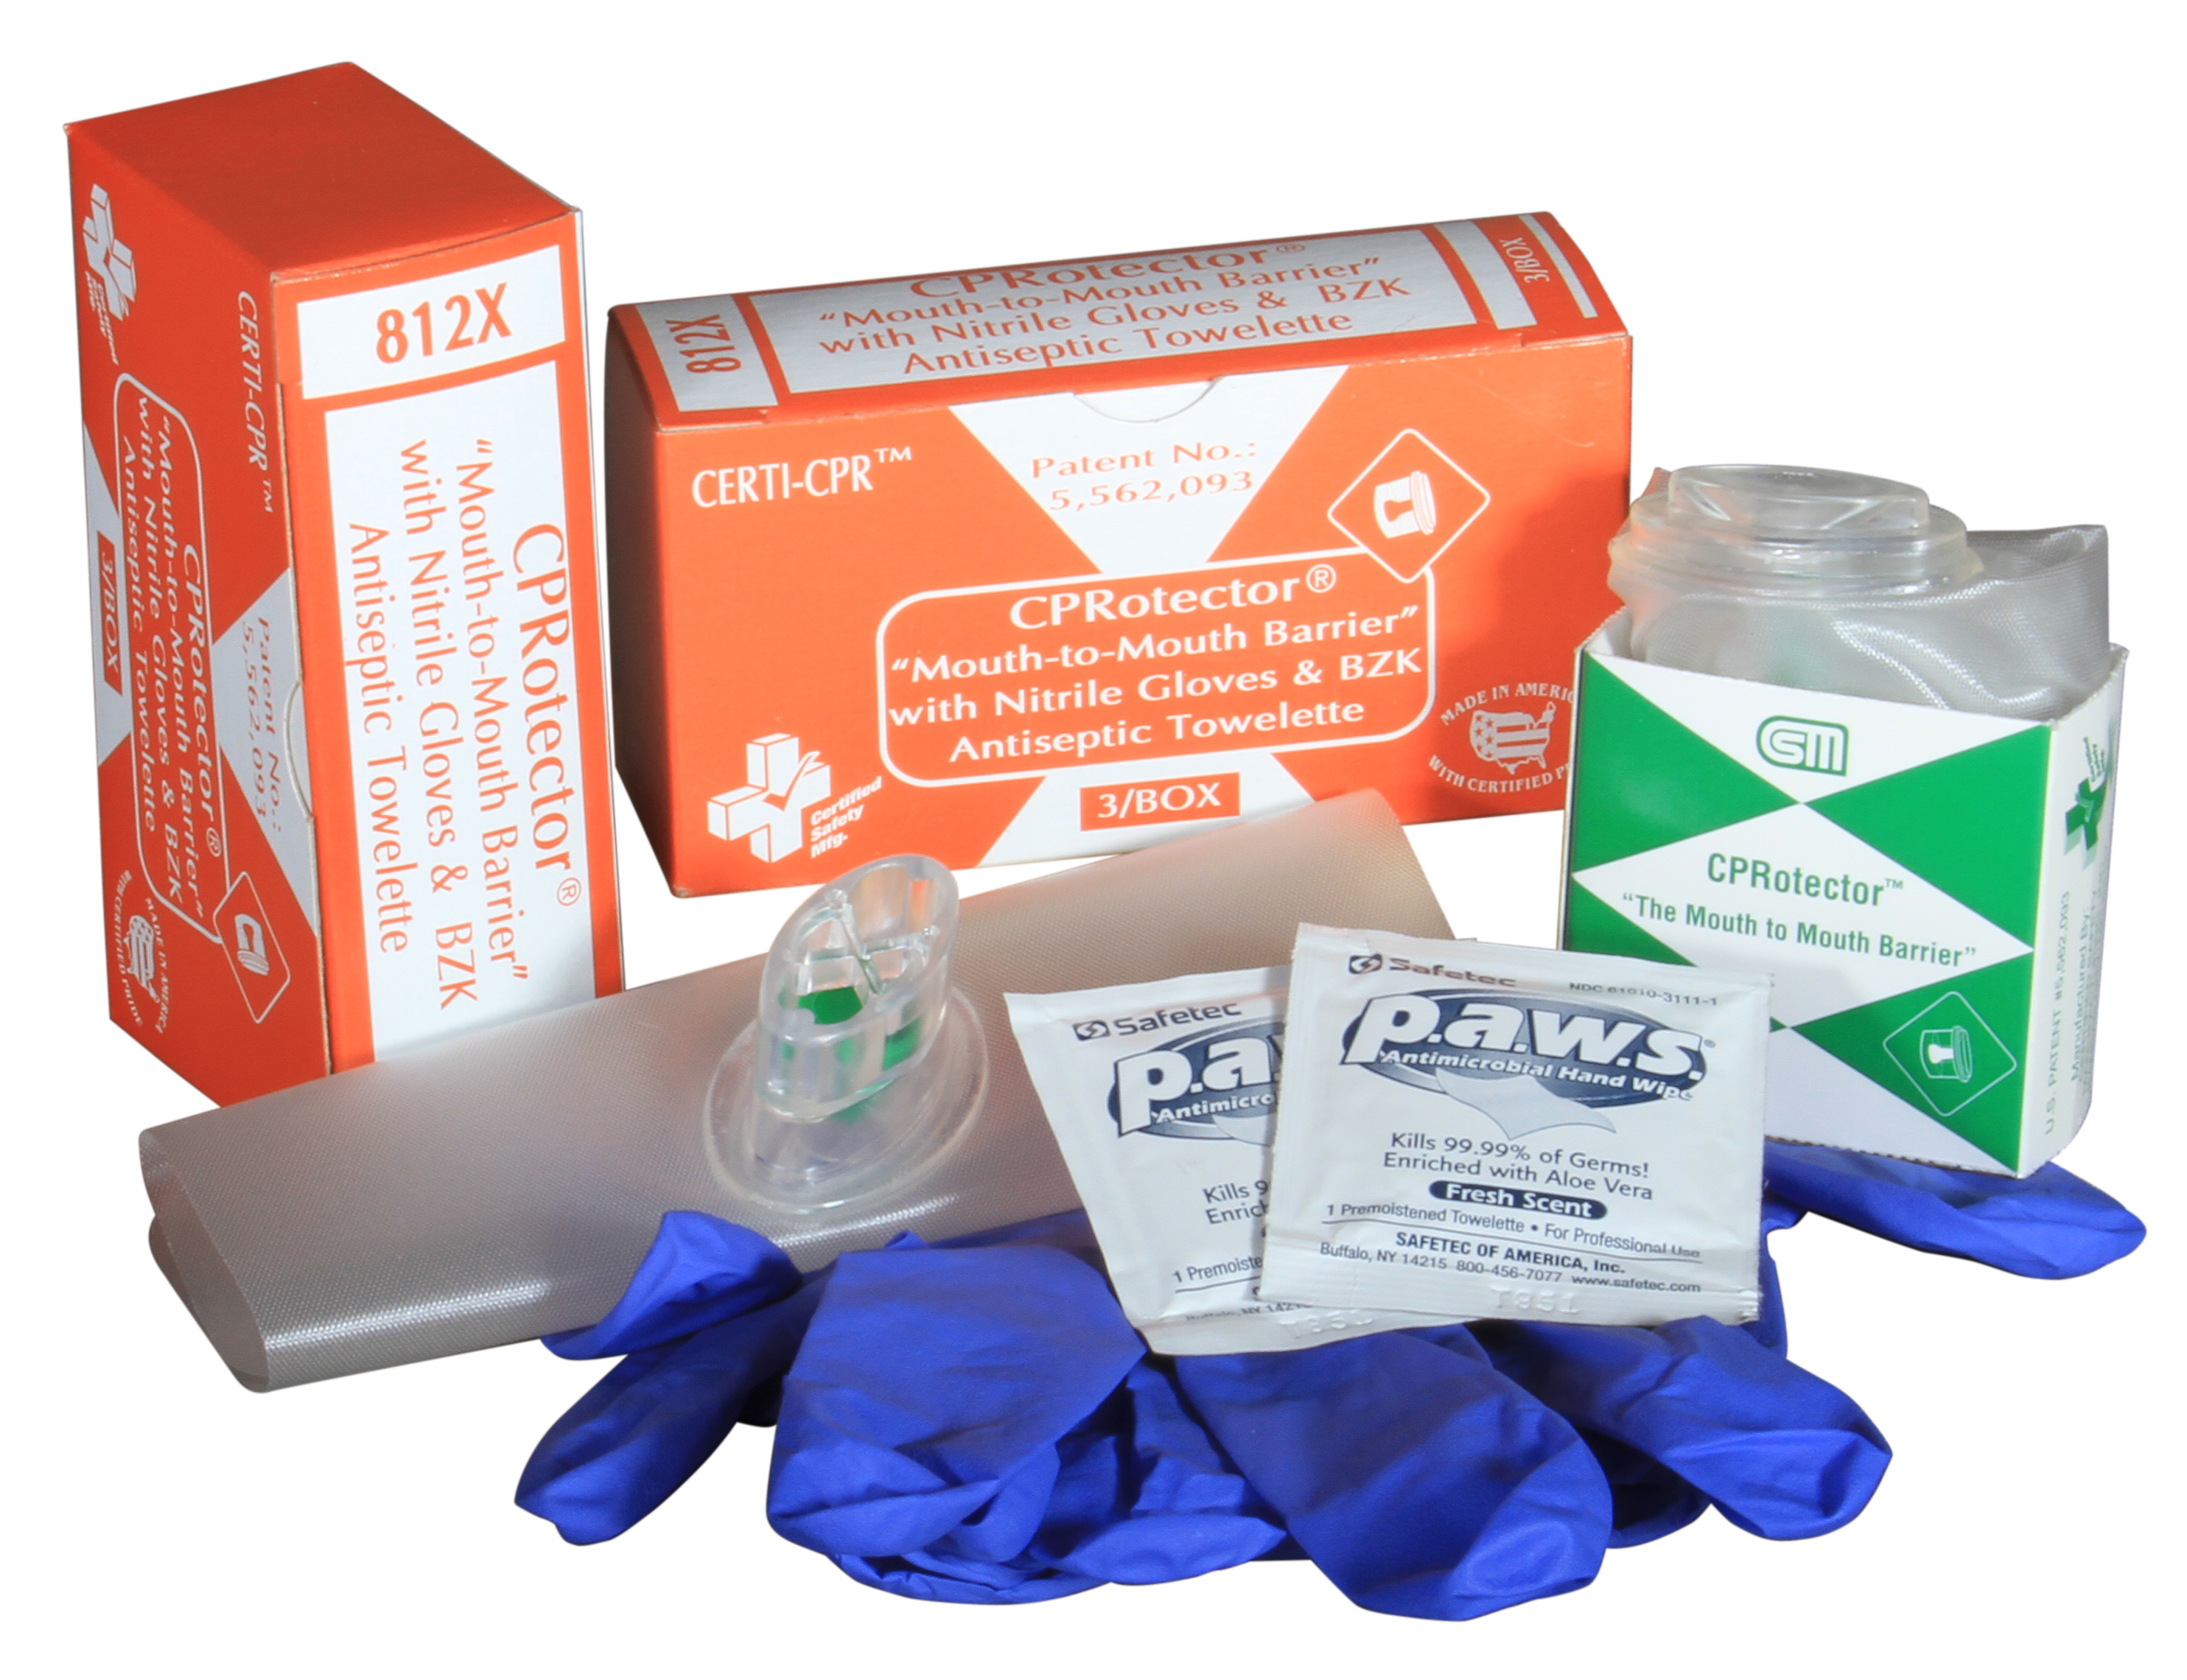 R216-072 --- 812X - CPRotector - wNitrile Gloves Towelette - 3unit